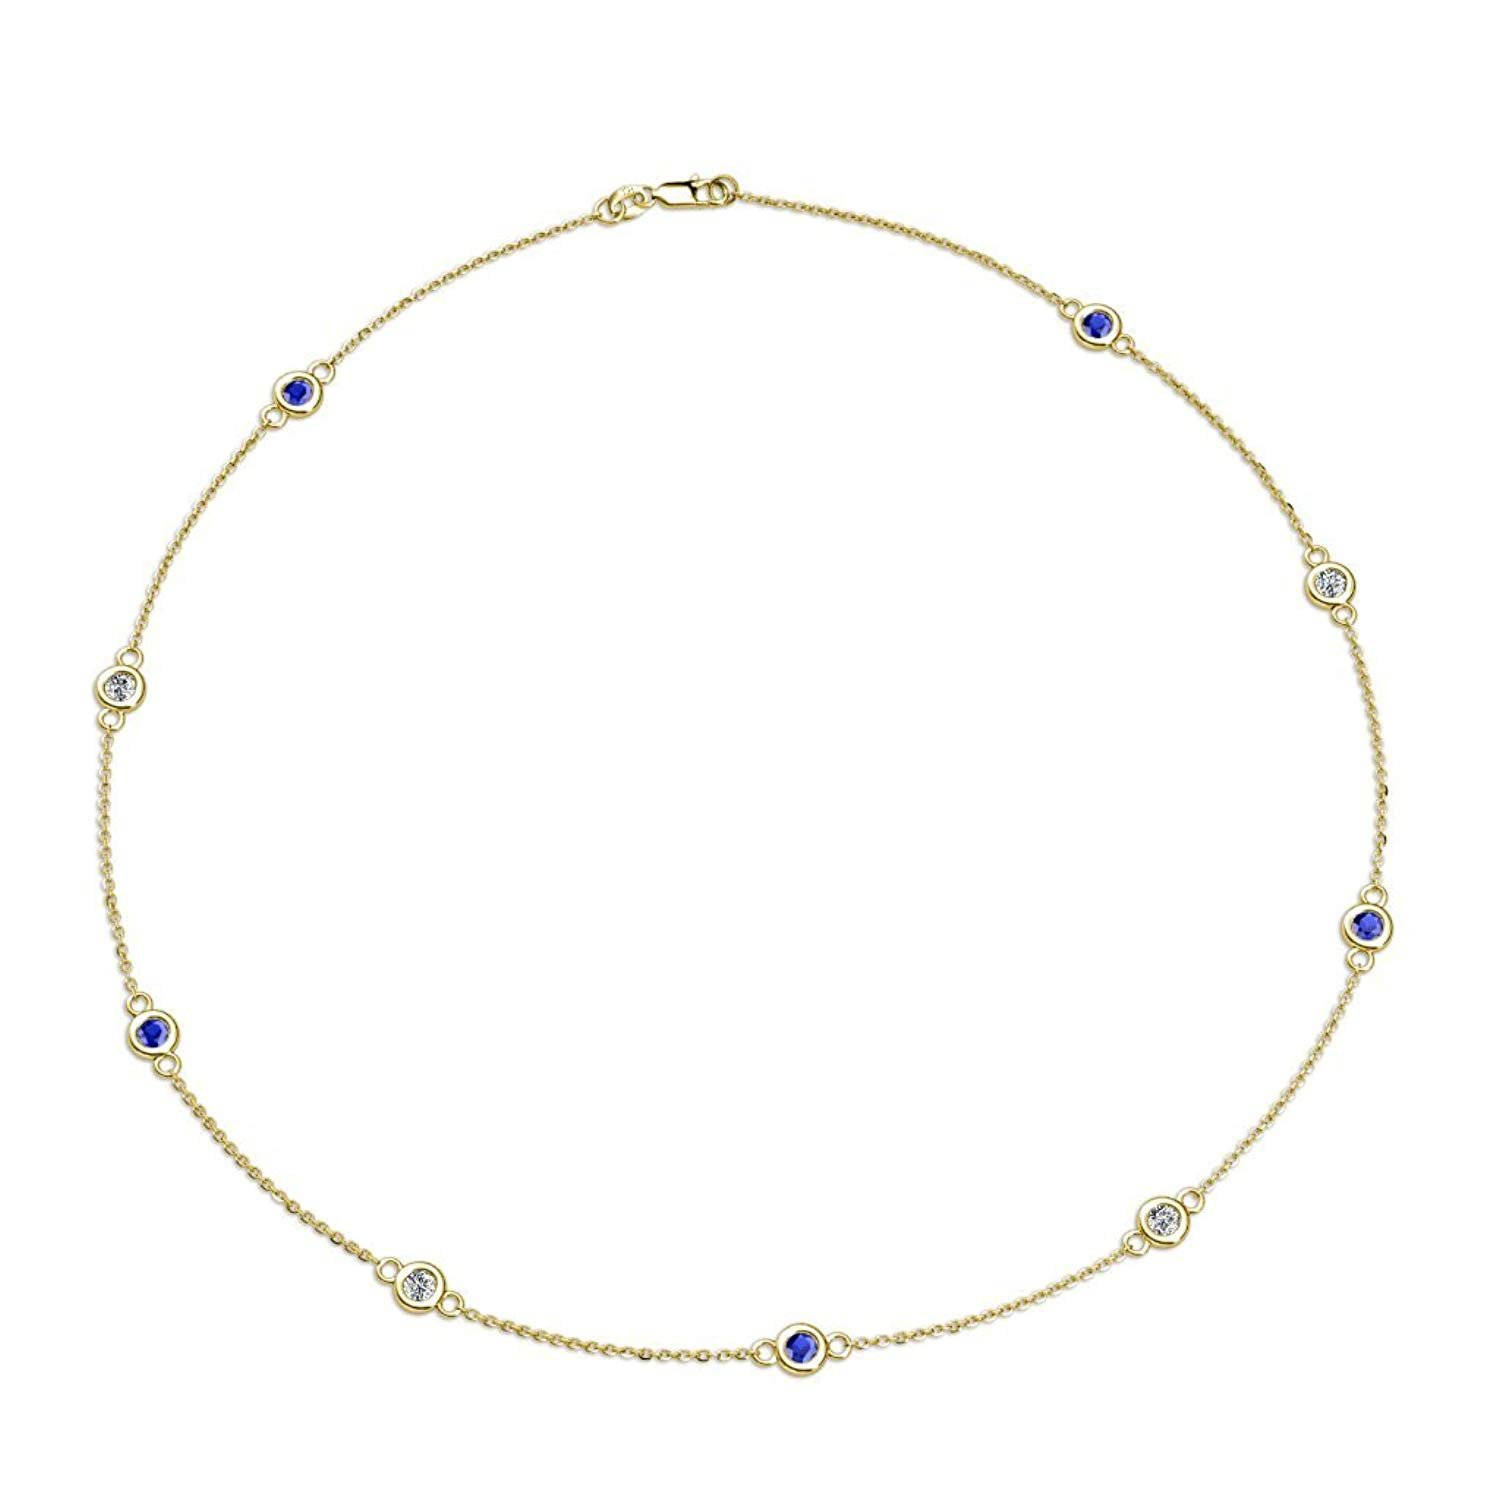 Blue Sapphire and Diamond (SI2-I1, G-H) 9 Station Necklace 1.39 cttw in 14K Yellow Gold by TriJewels